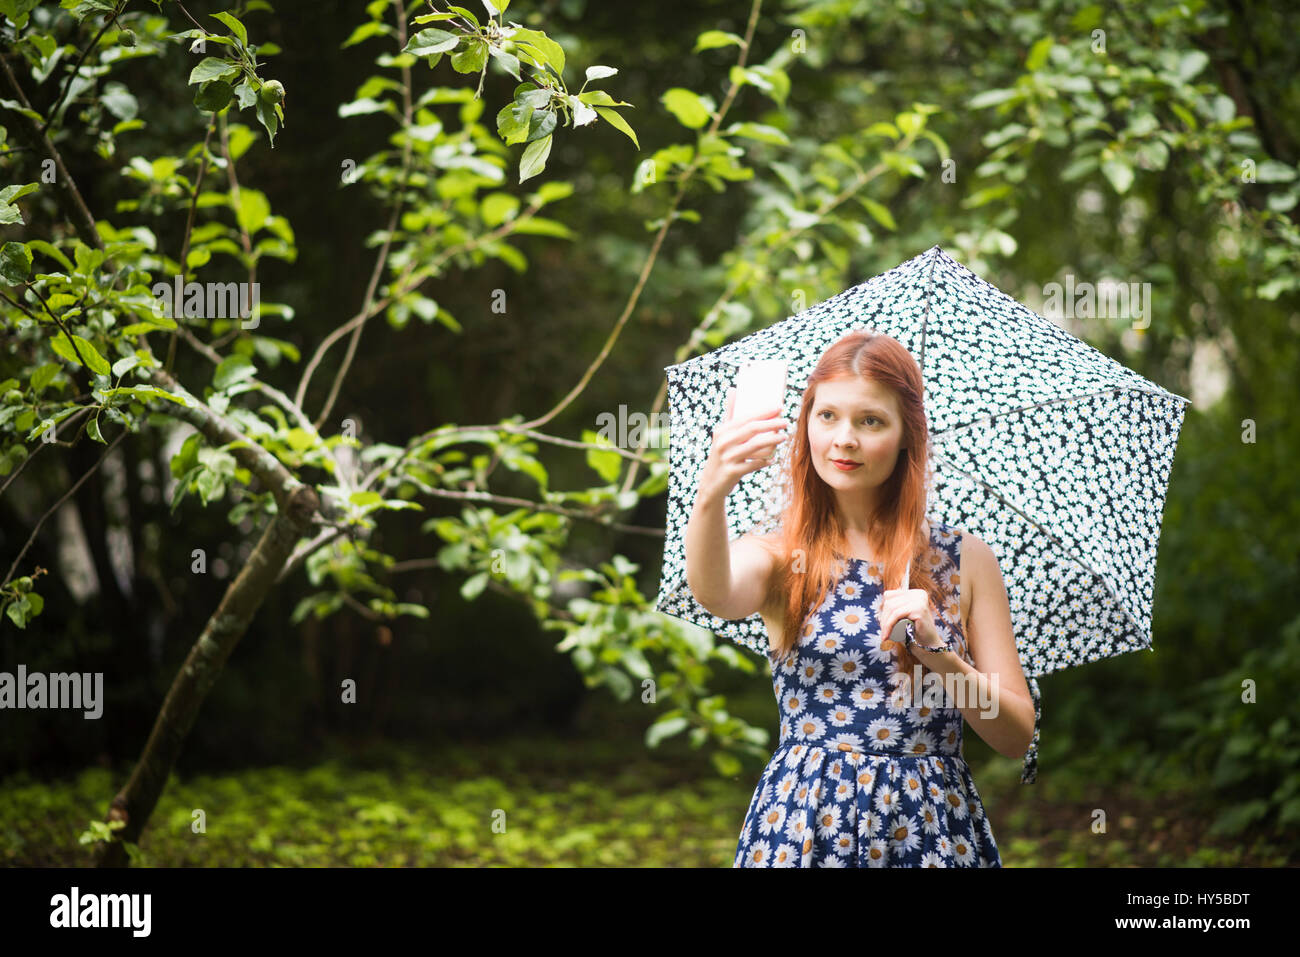 Finland, Pirkanmaa, Tampere, Woman wearing floral dress standing with umbrella in park and taking selfie Stock Photo